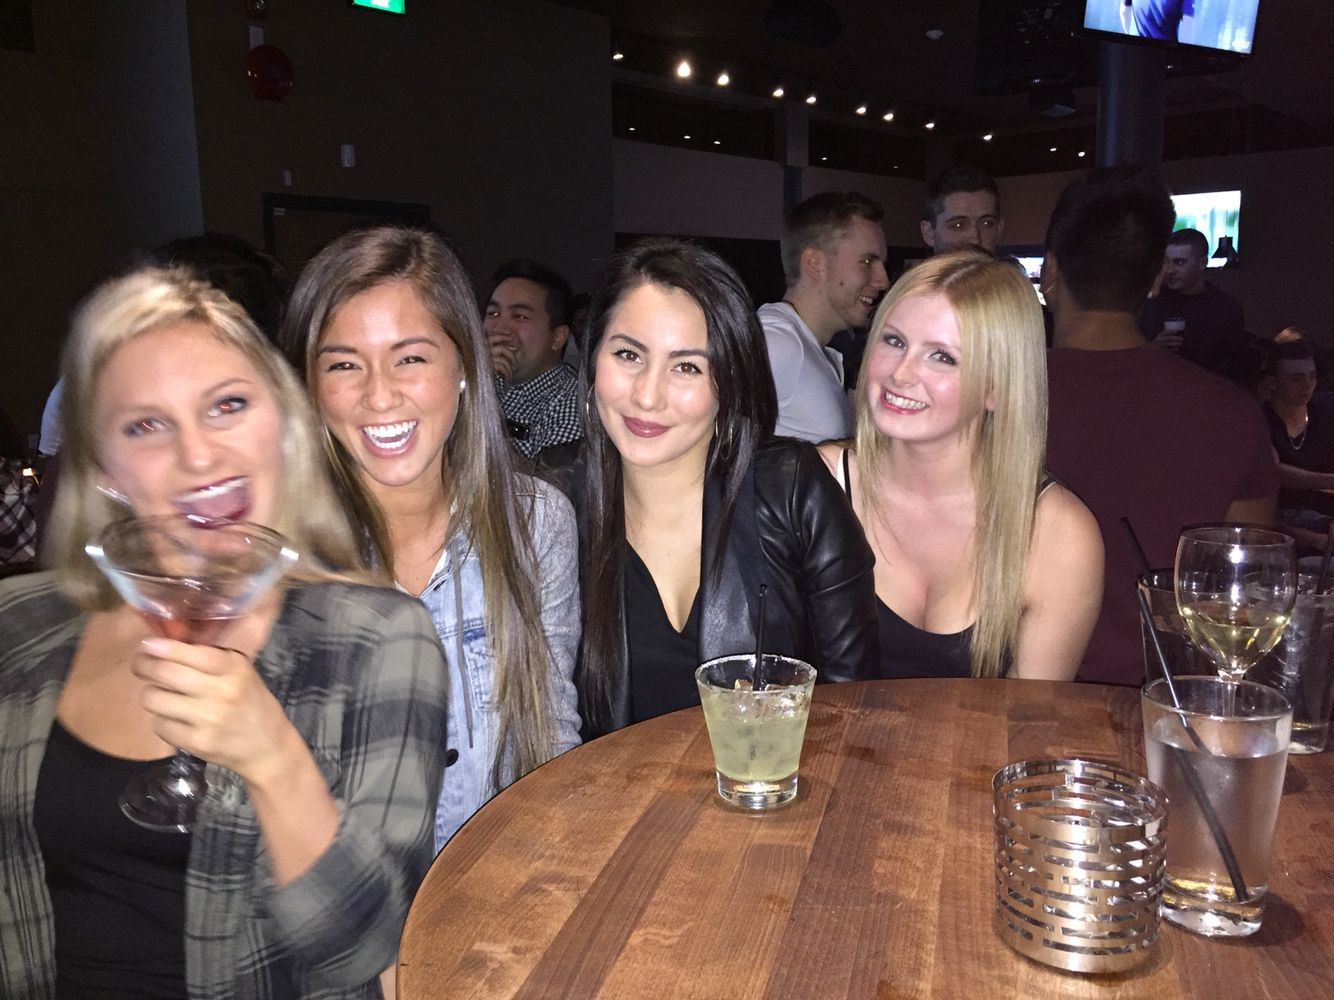 That tap house life